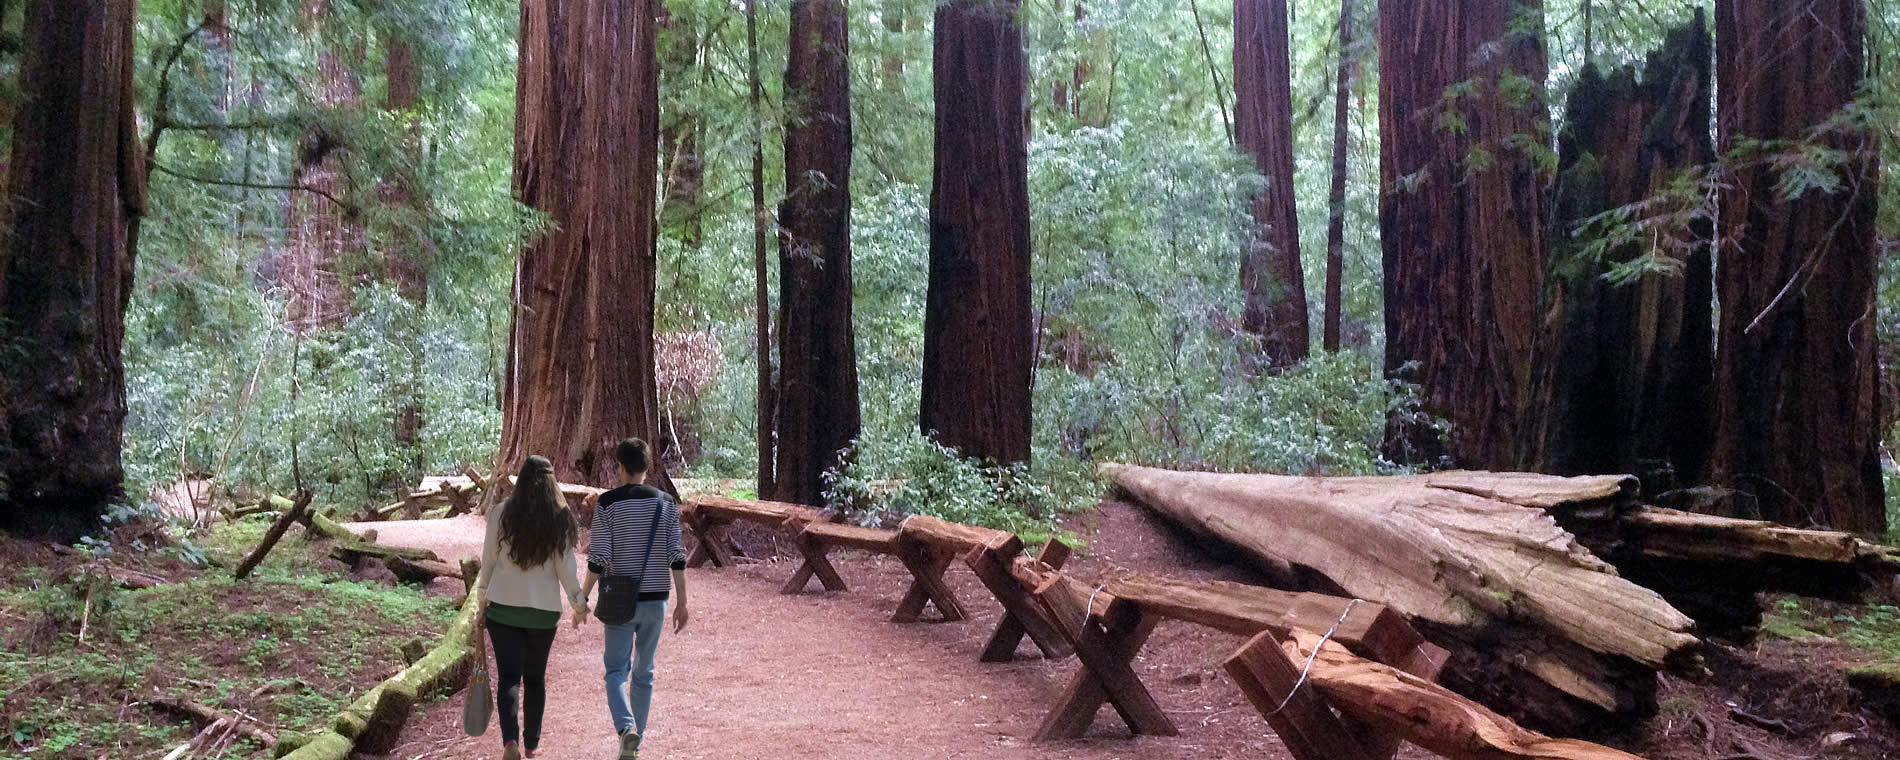 armstrong woods russian river valley things to do